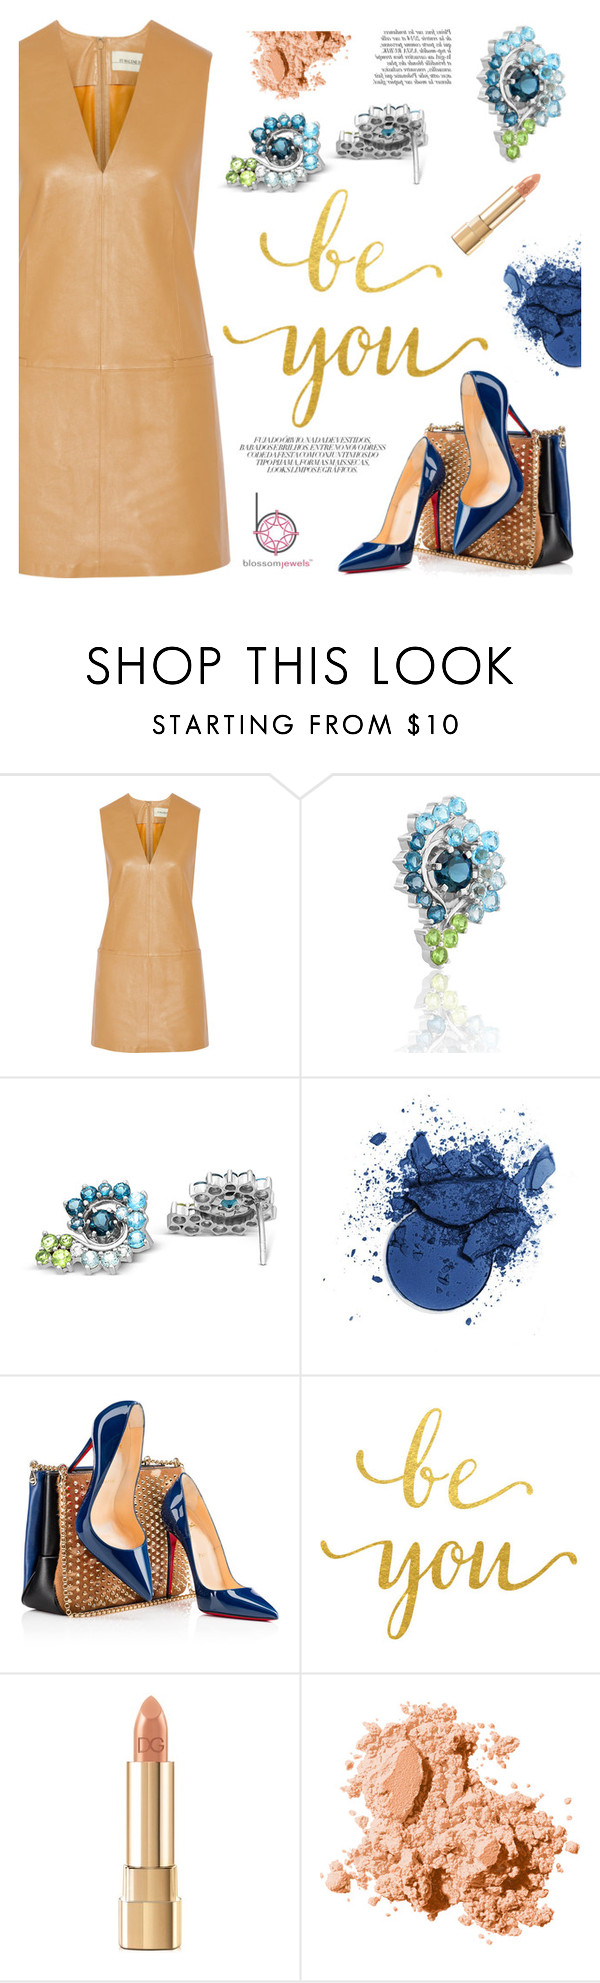 """""""Ombre effect"""" by blossom-jewels ❤ liked on Polyvore featuring By Malene Birger, Christian Louboutin, Dolce&Gabbana, Bobbi Brown Cosmetics and Anja"""